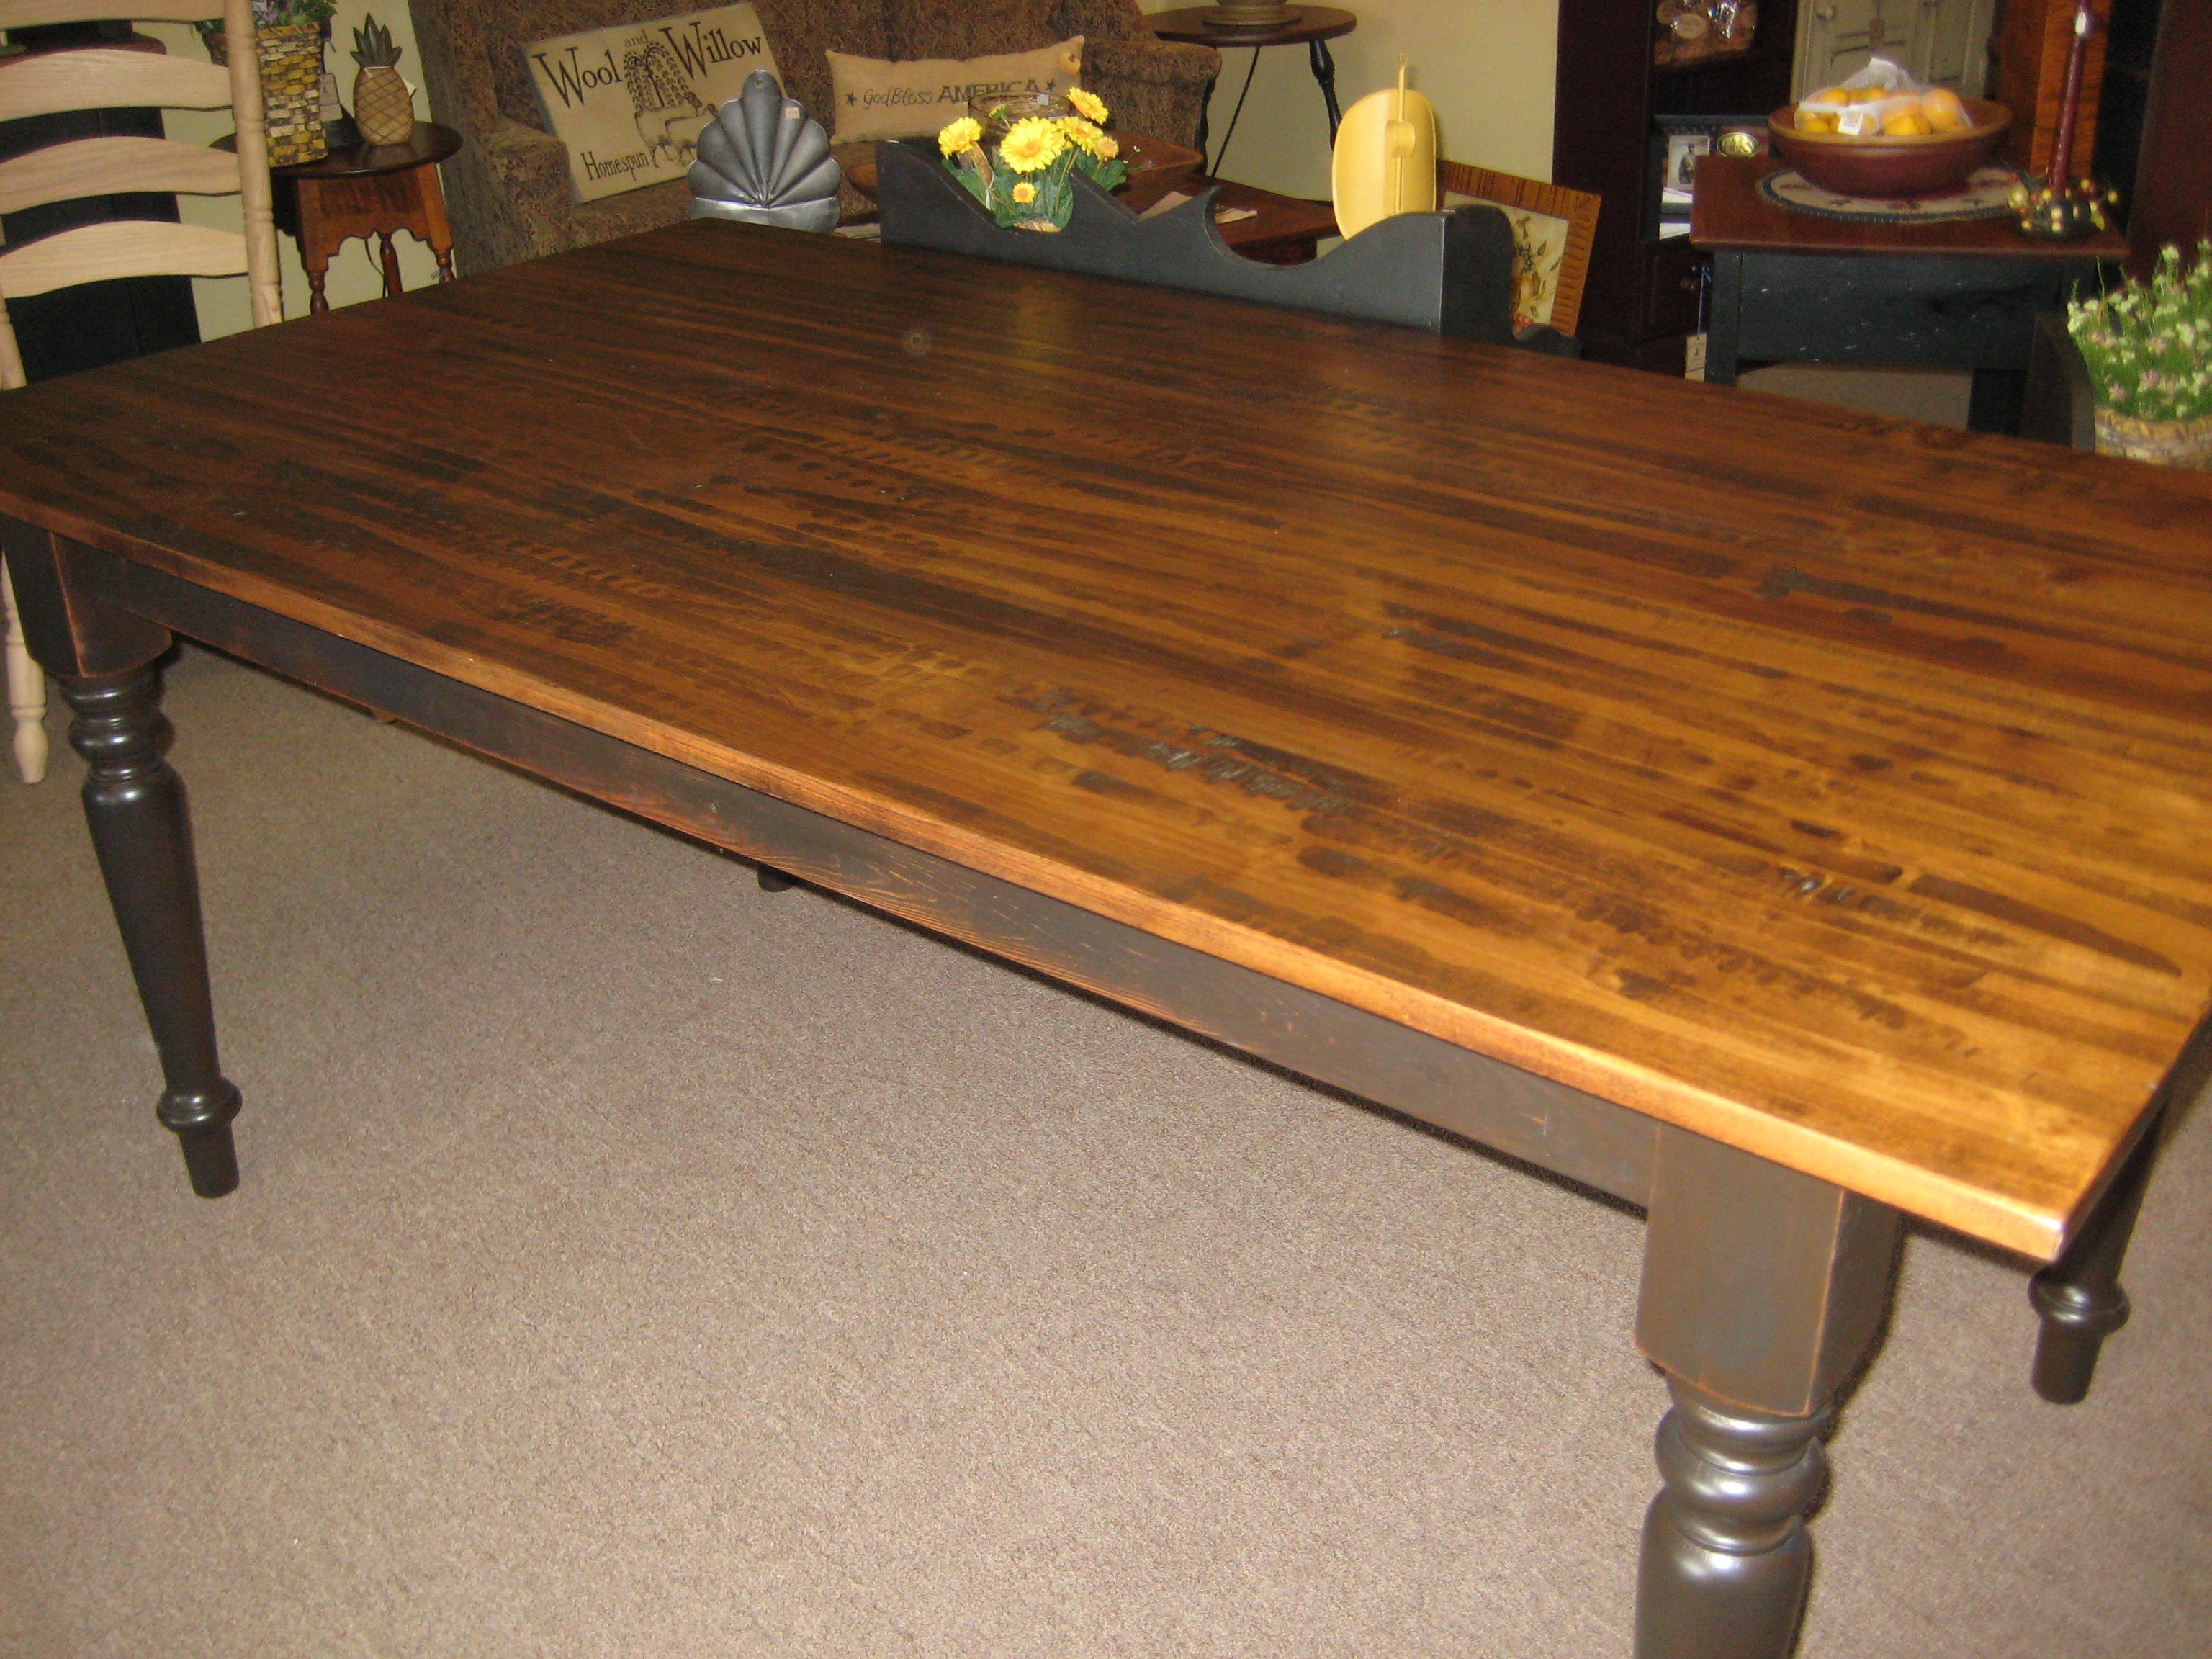 Merveilleux Harvest Table With Hand Scraped Brown Maple Top